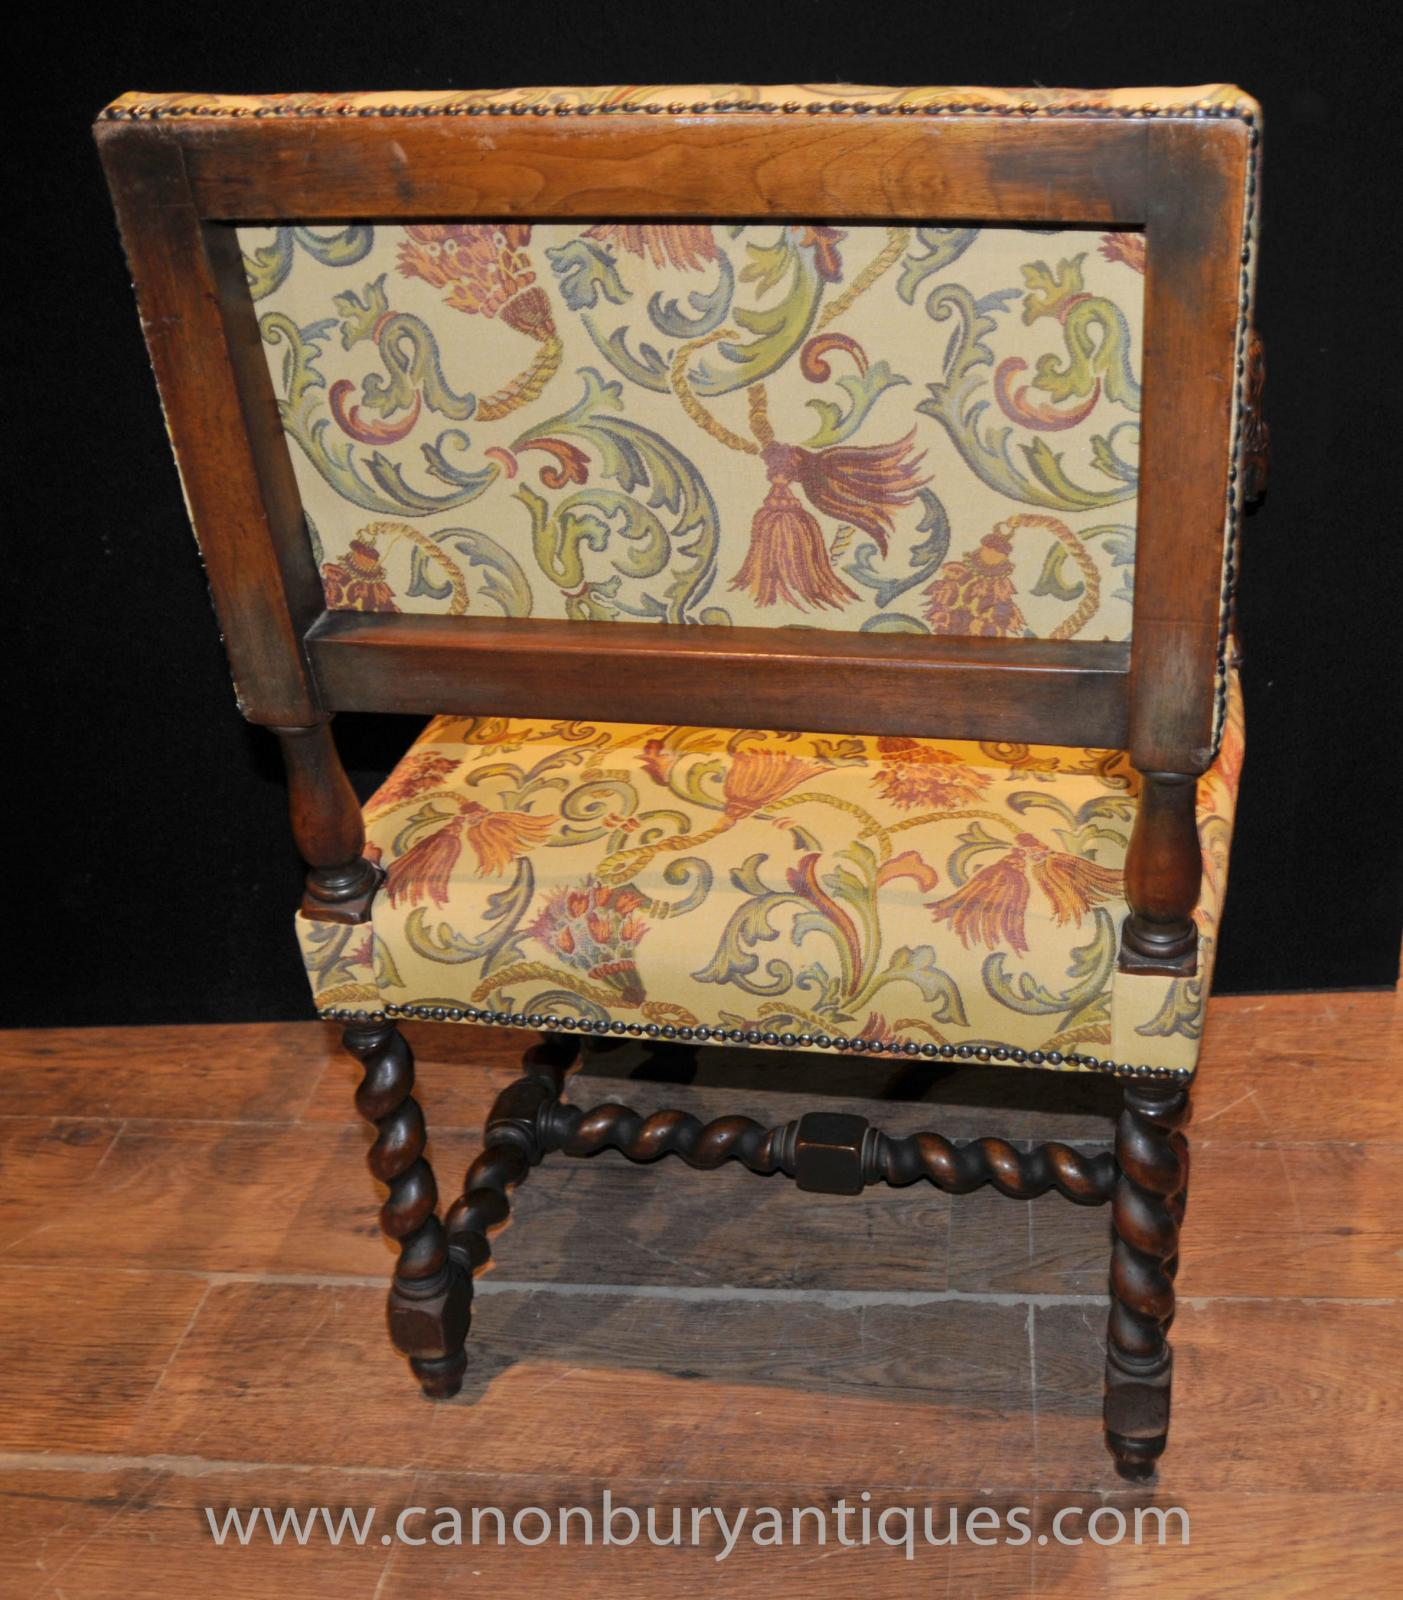 Antique italian chairs - Additional Images